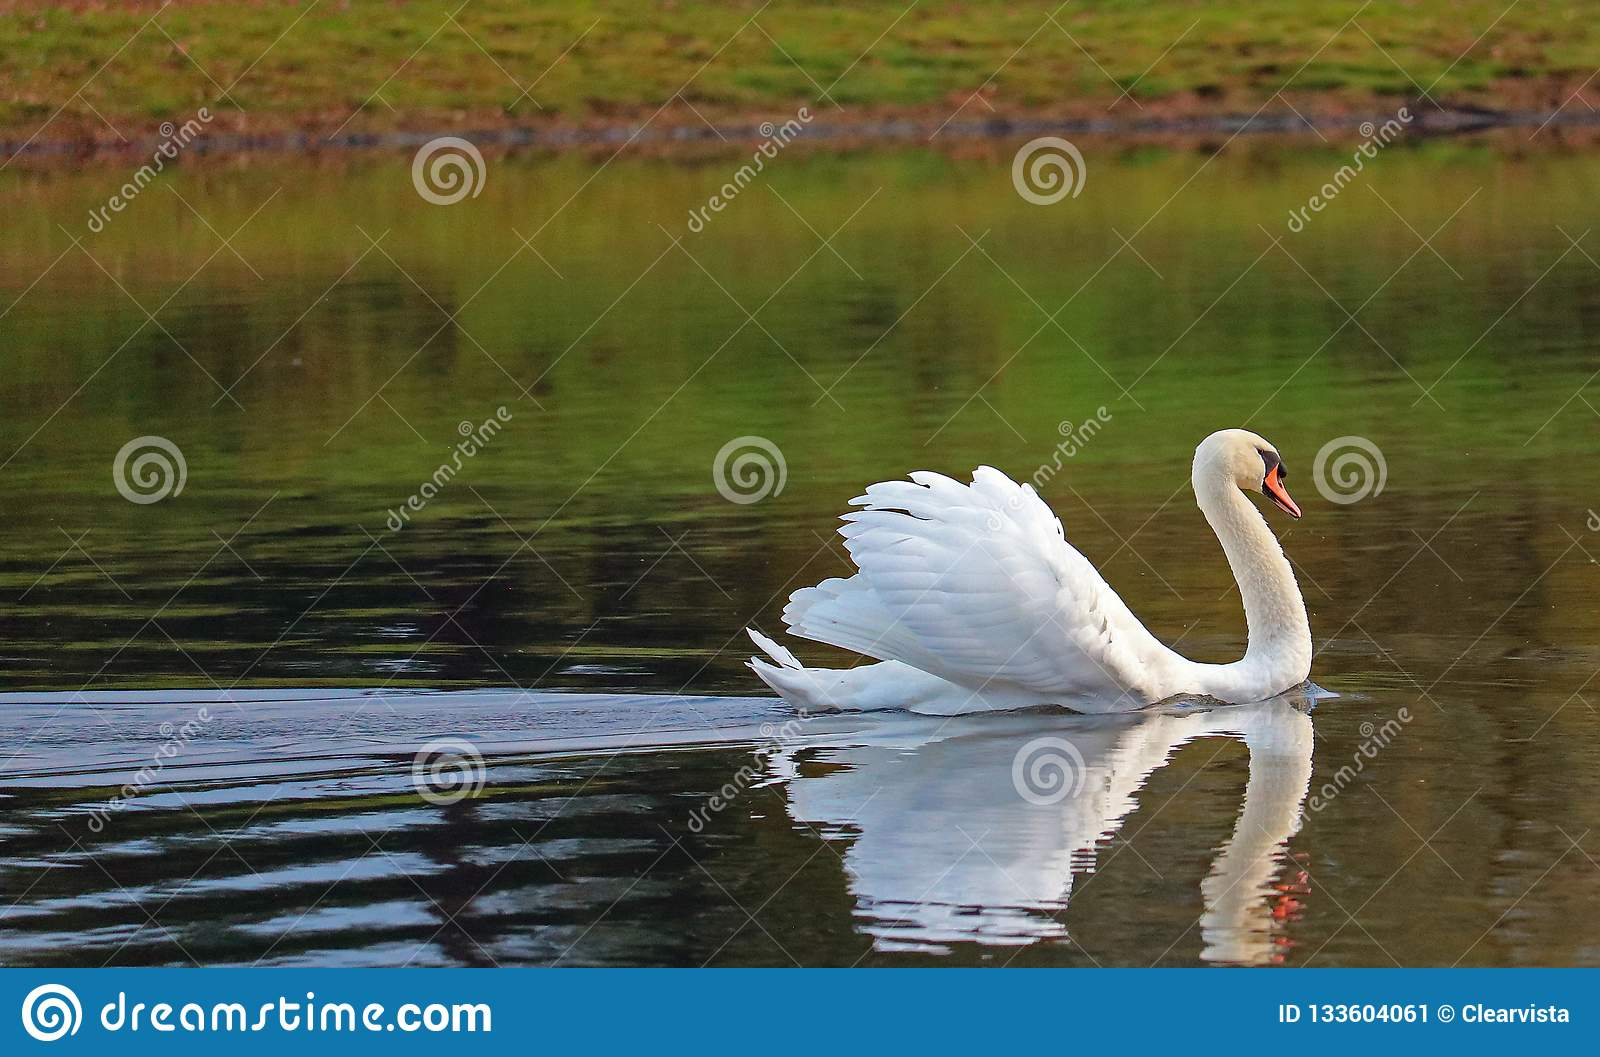 Gliding swan with feathers raised. Displaying.